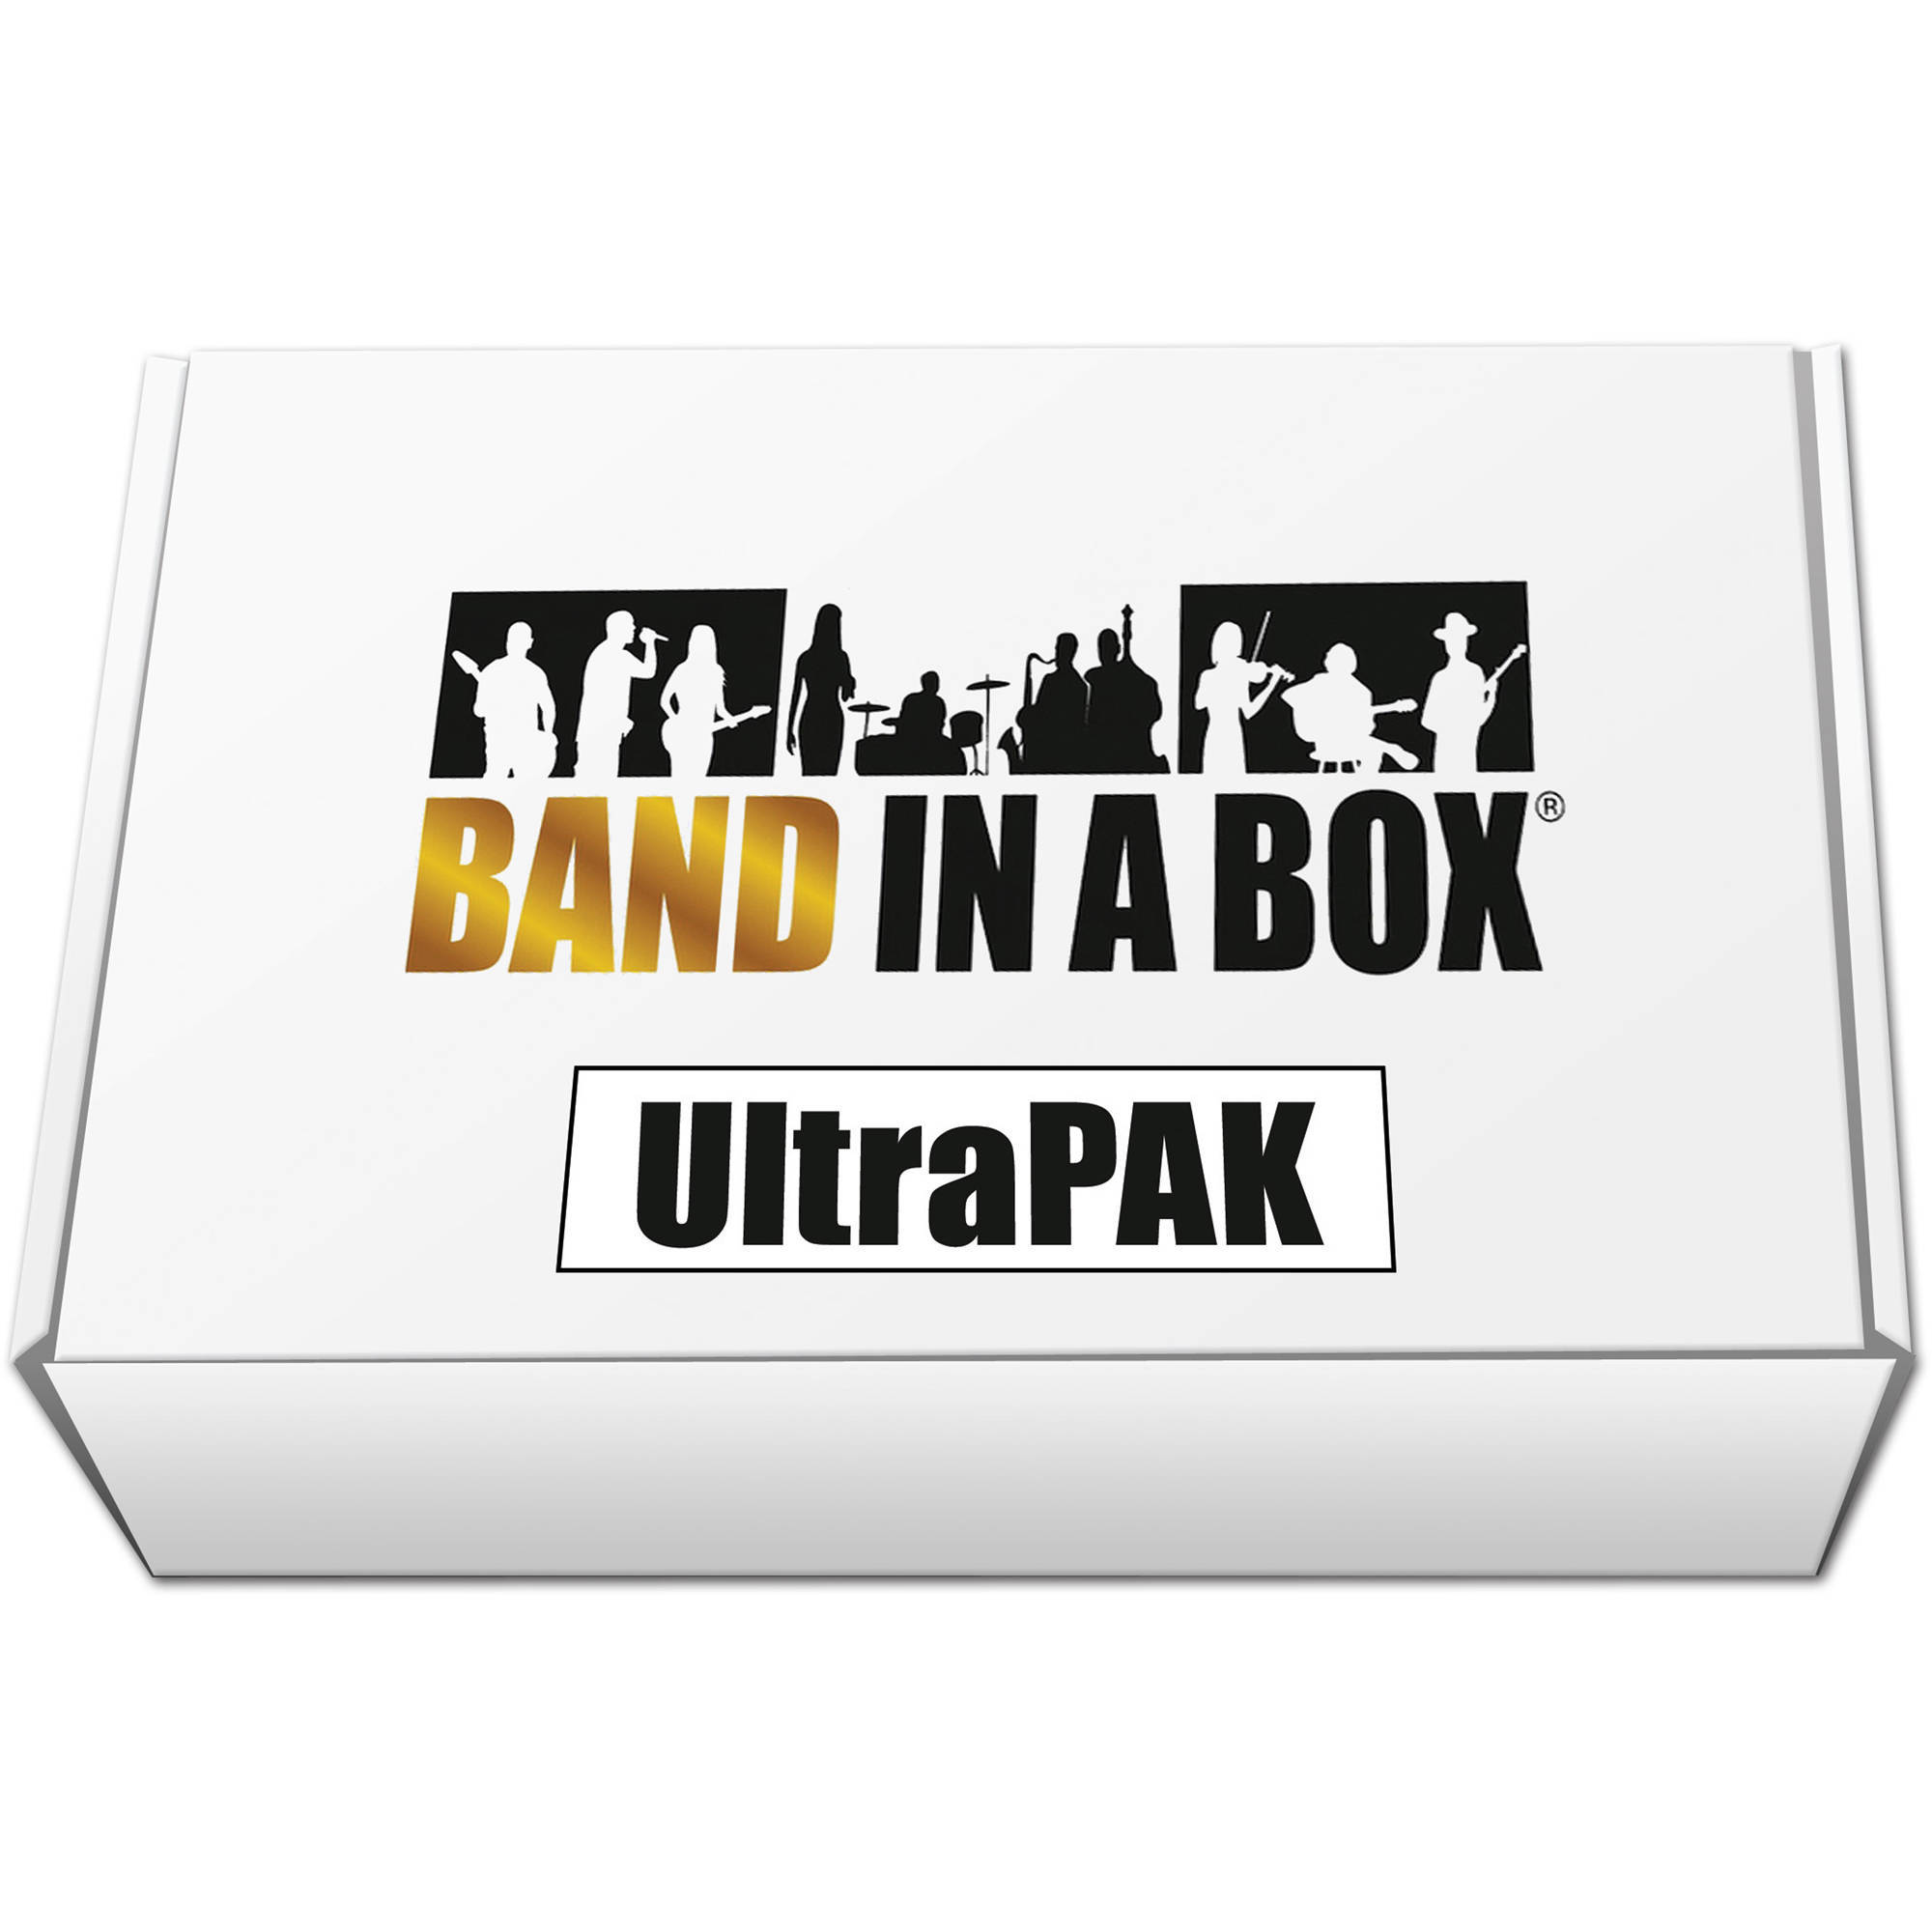 PG Music Band-in-a-Box 2018 UltraPAK - Backing Band / BBE80762DL